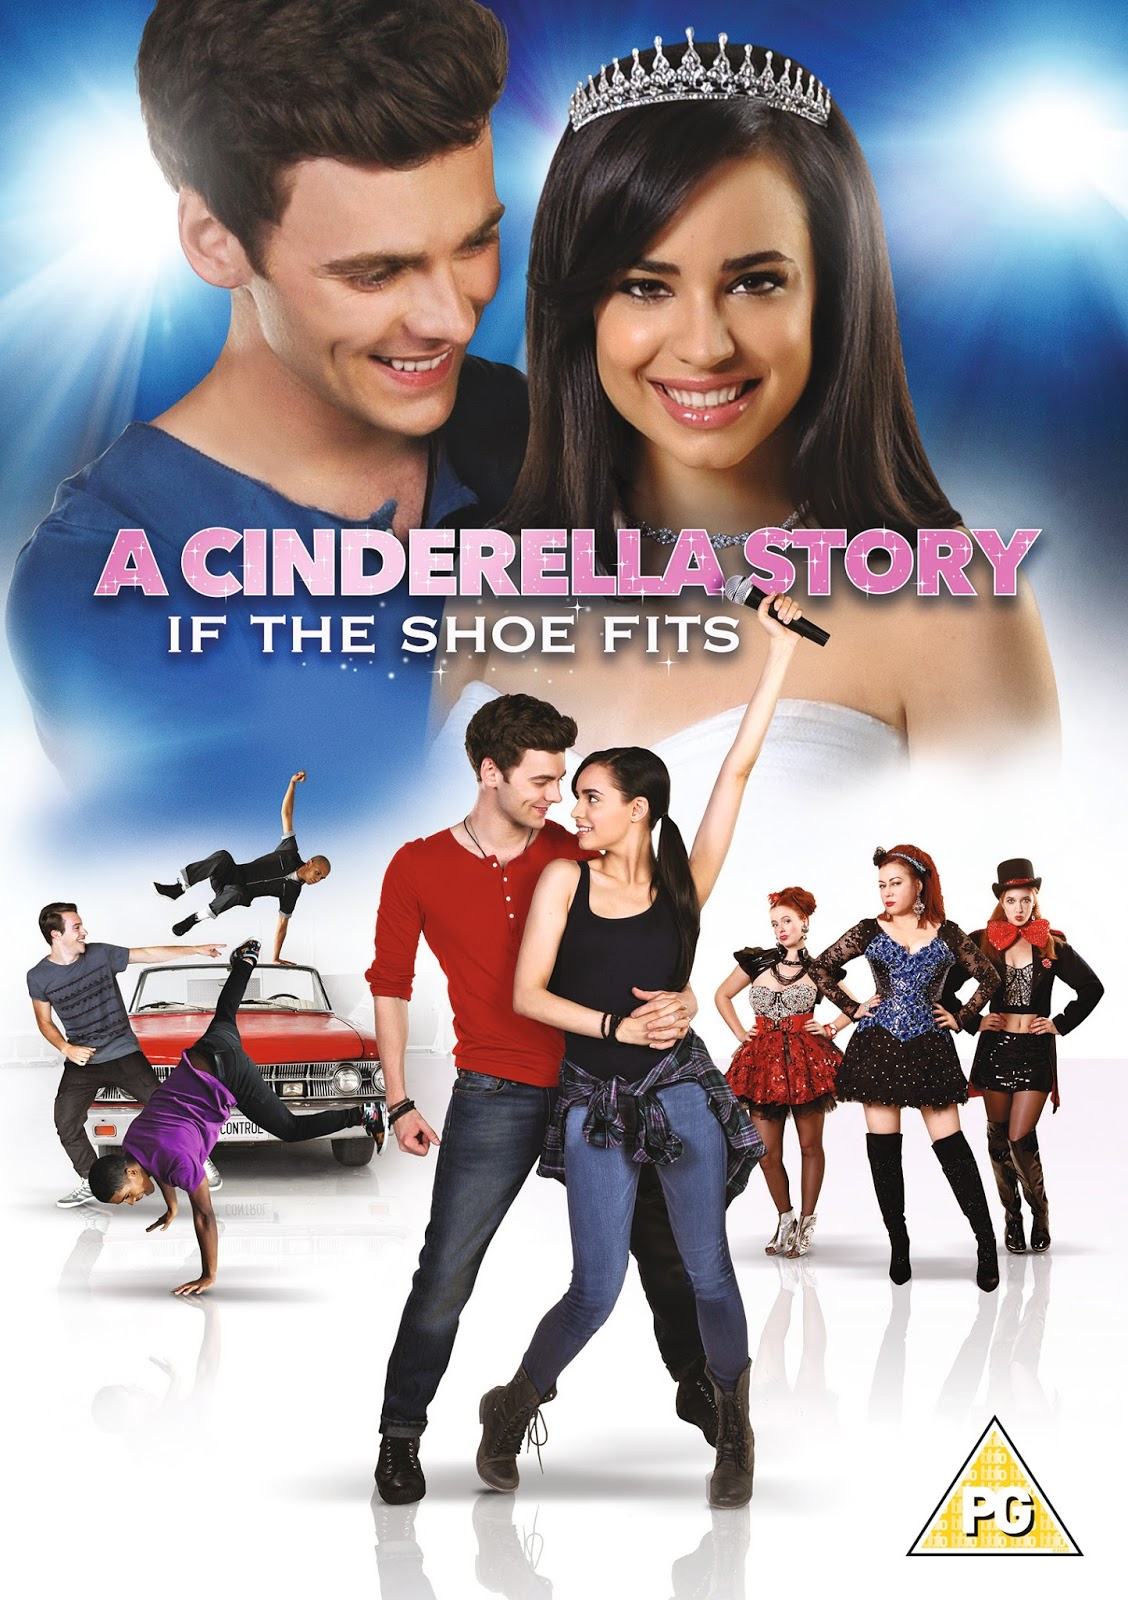 A Cinderella Story - If The Shoe Fits DVD Cover